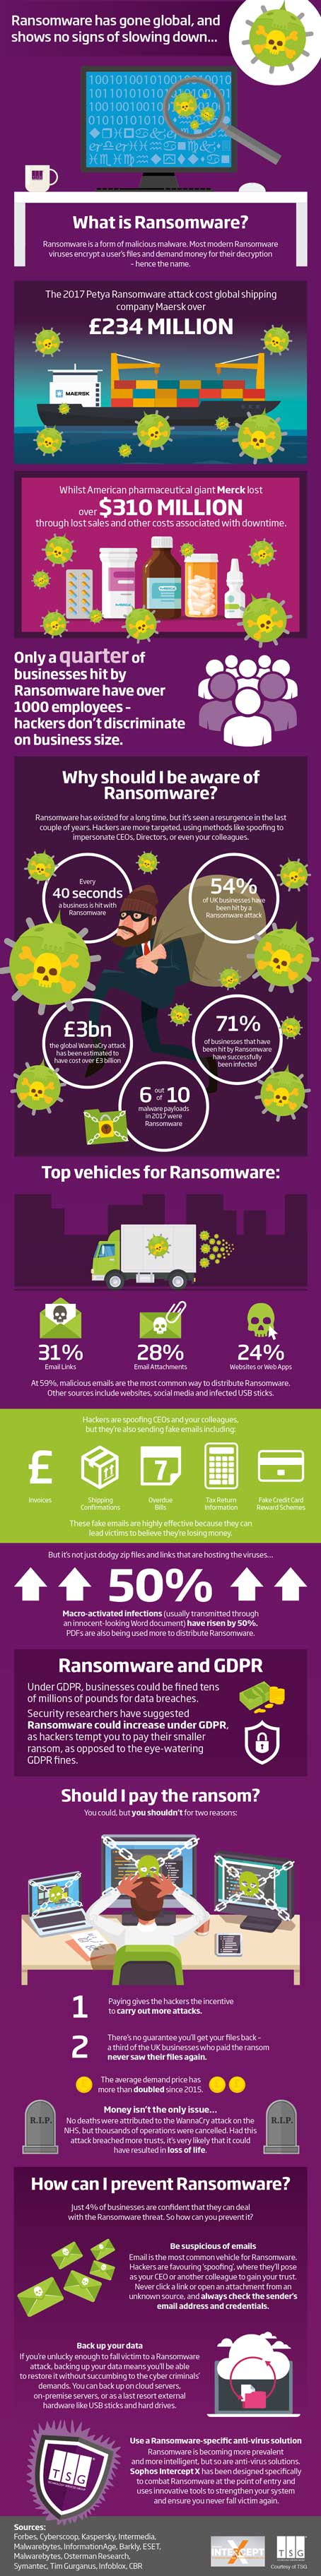 Ransomware-infographic---from-Technology-Services-Group